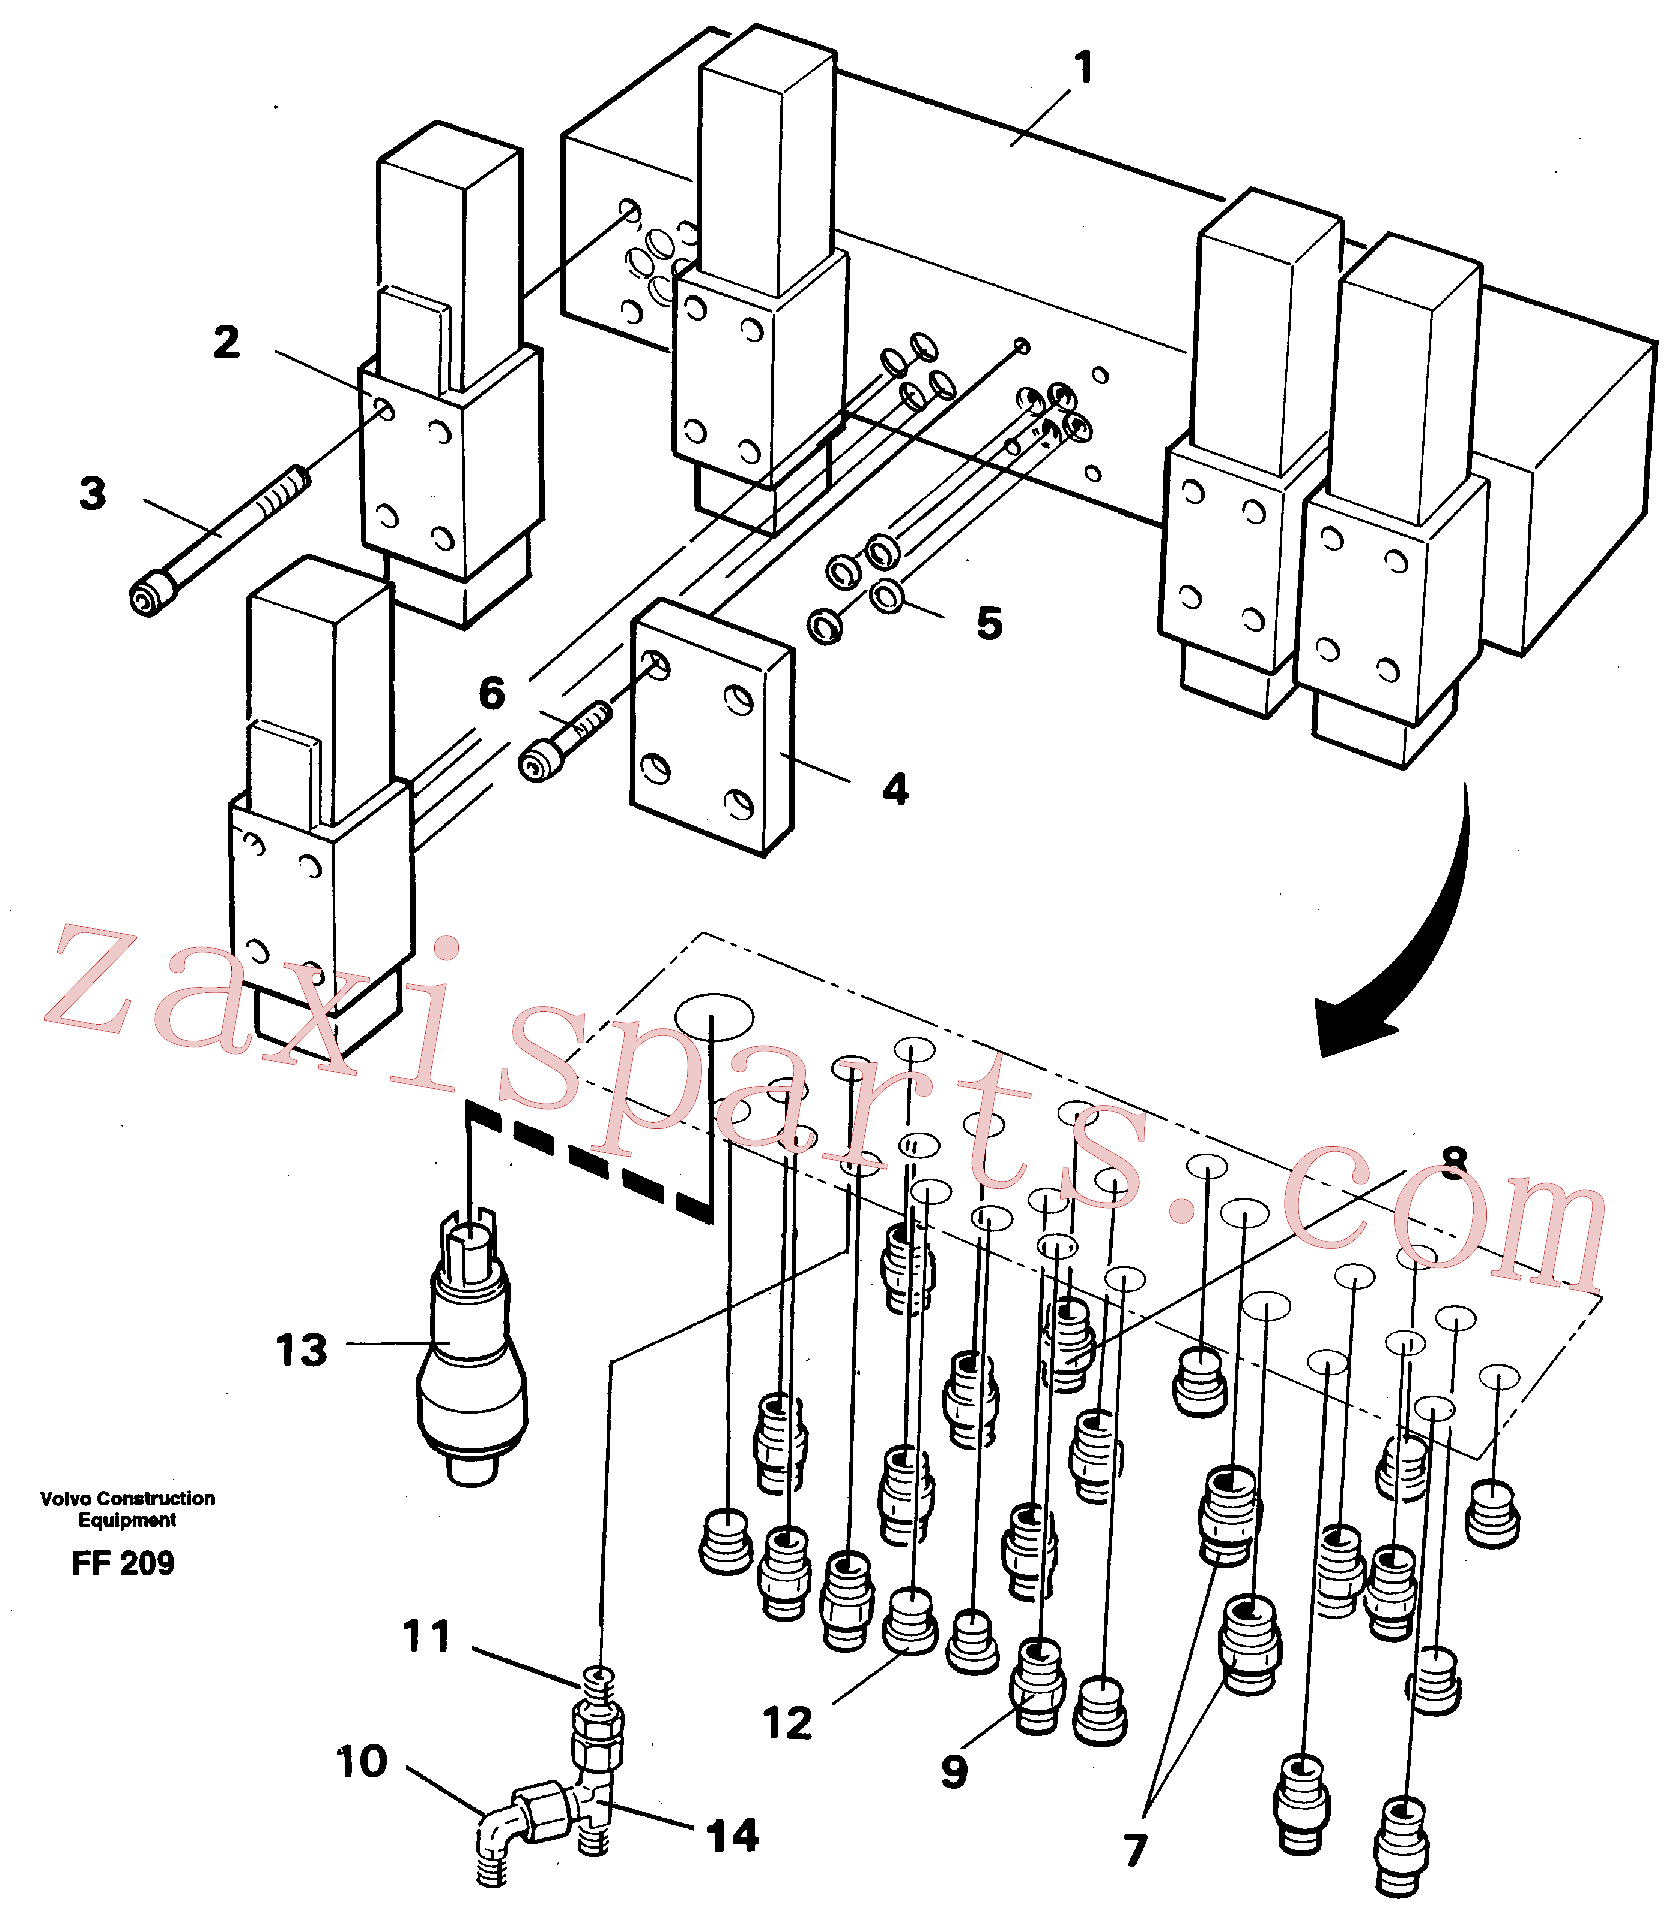 VOE11706958 for Volvo Stop control block(FF209 assembly)